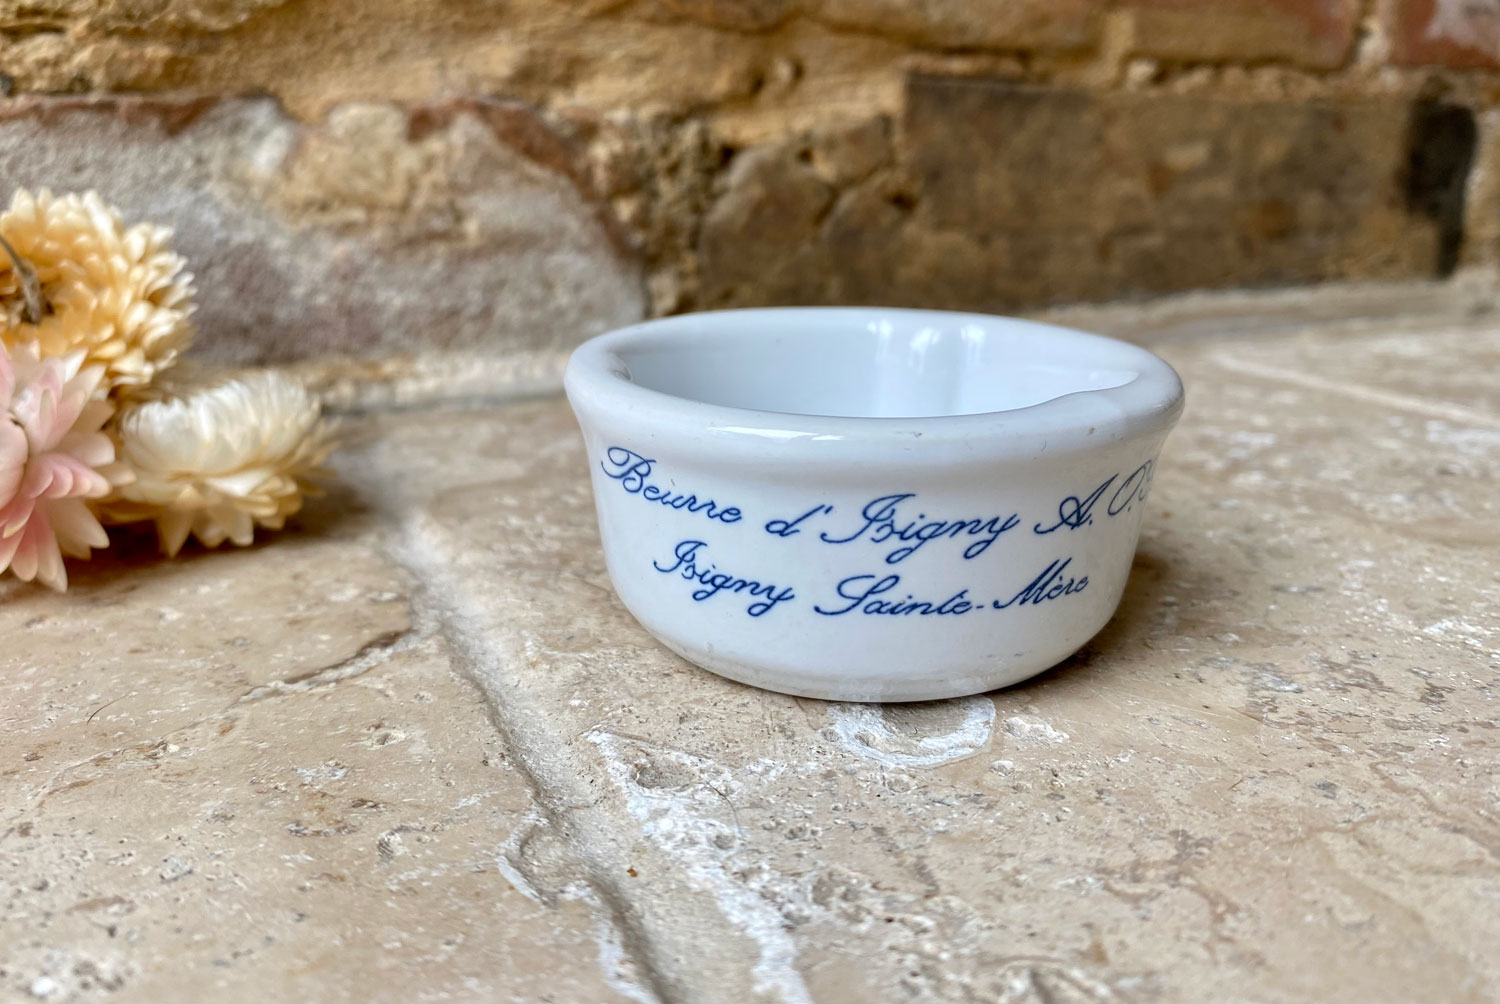 vintage french advertising pot beurre d'isigny chubby white ironstone butter pat